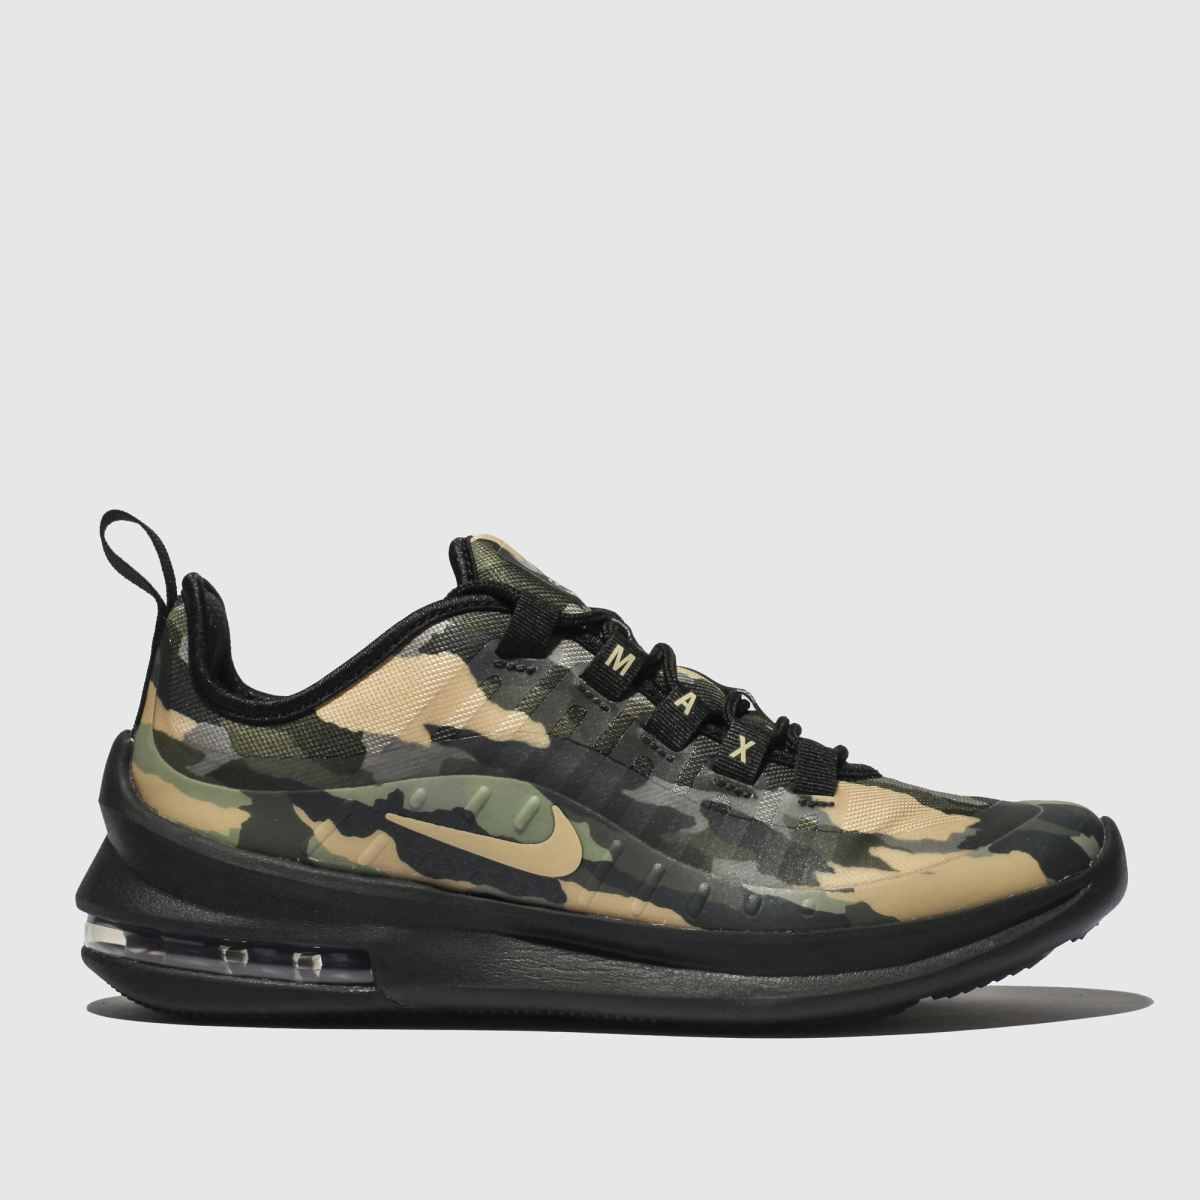 Nike Brown & Black Air Max Axis Trainers Youth